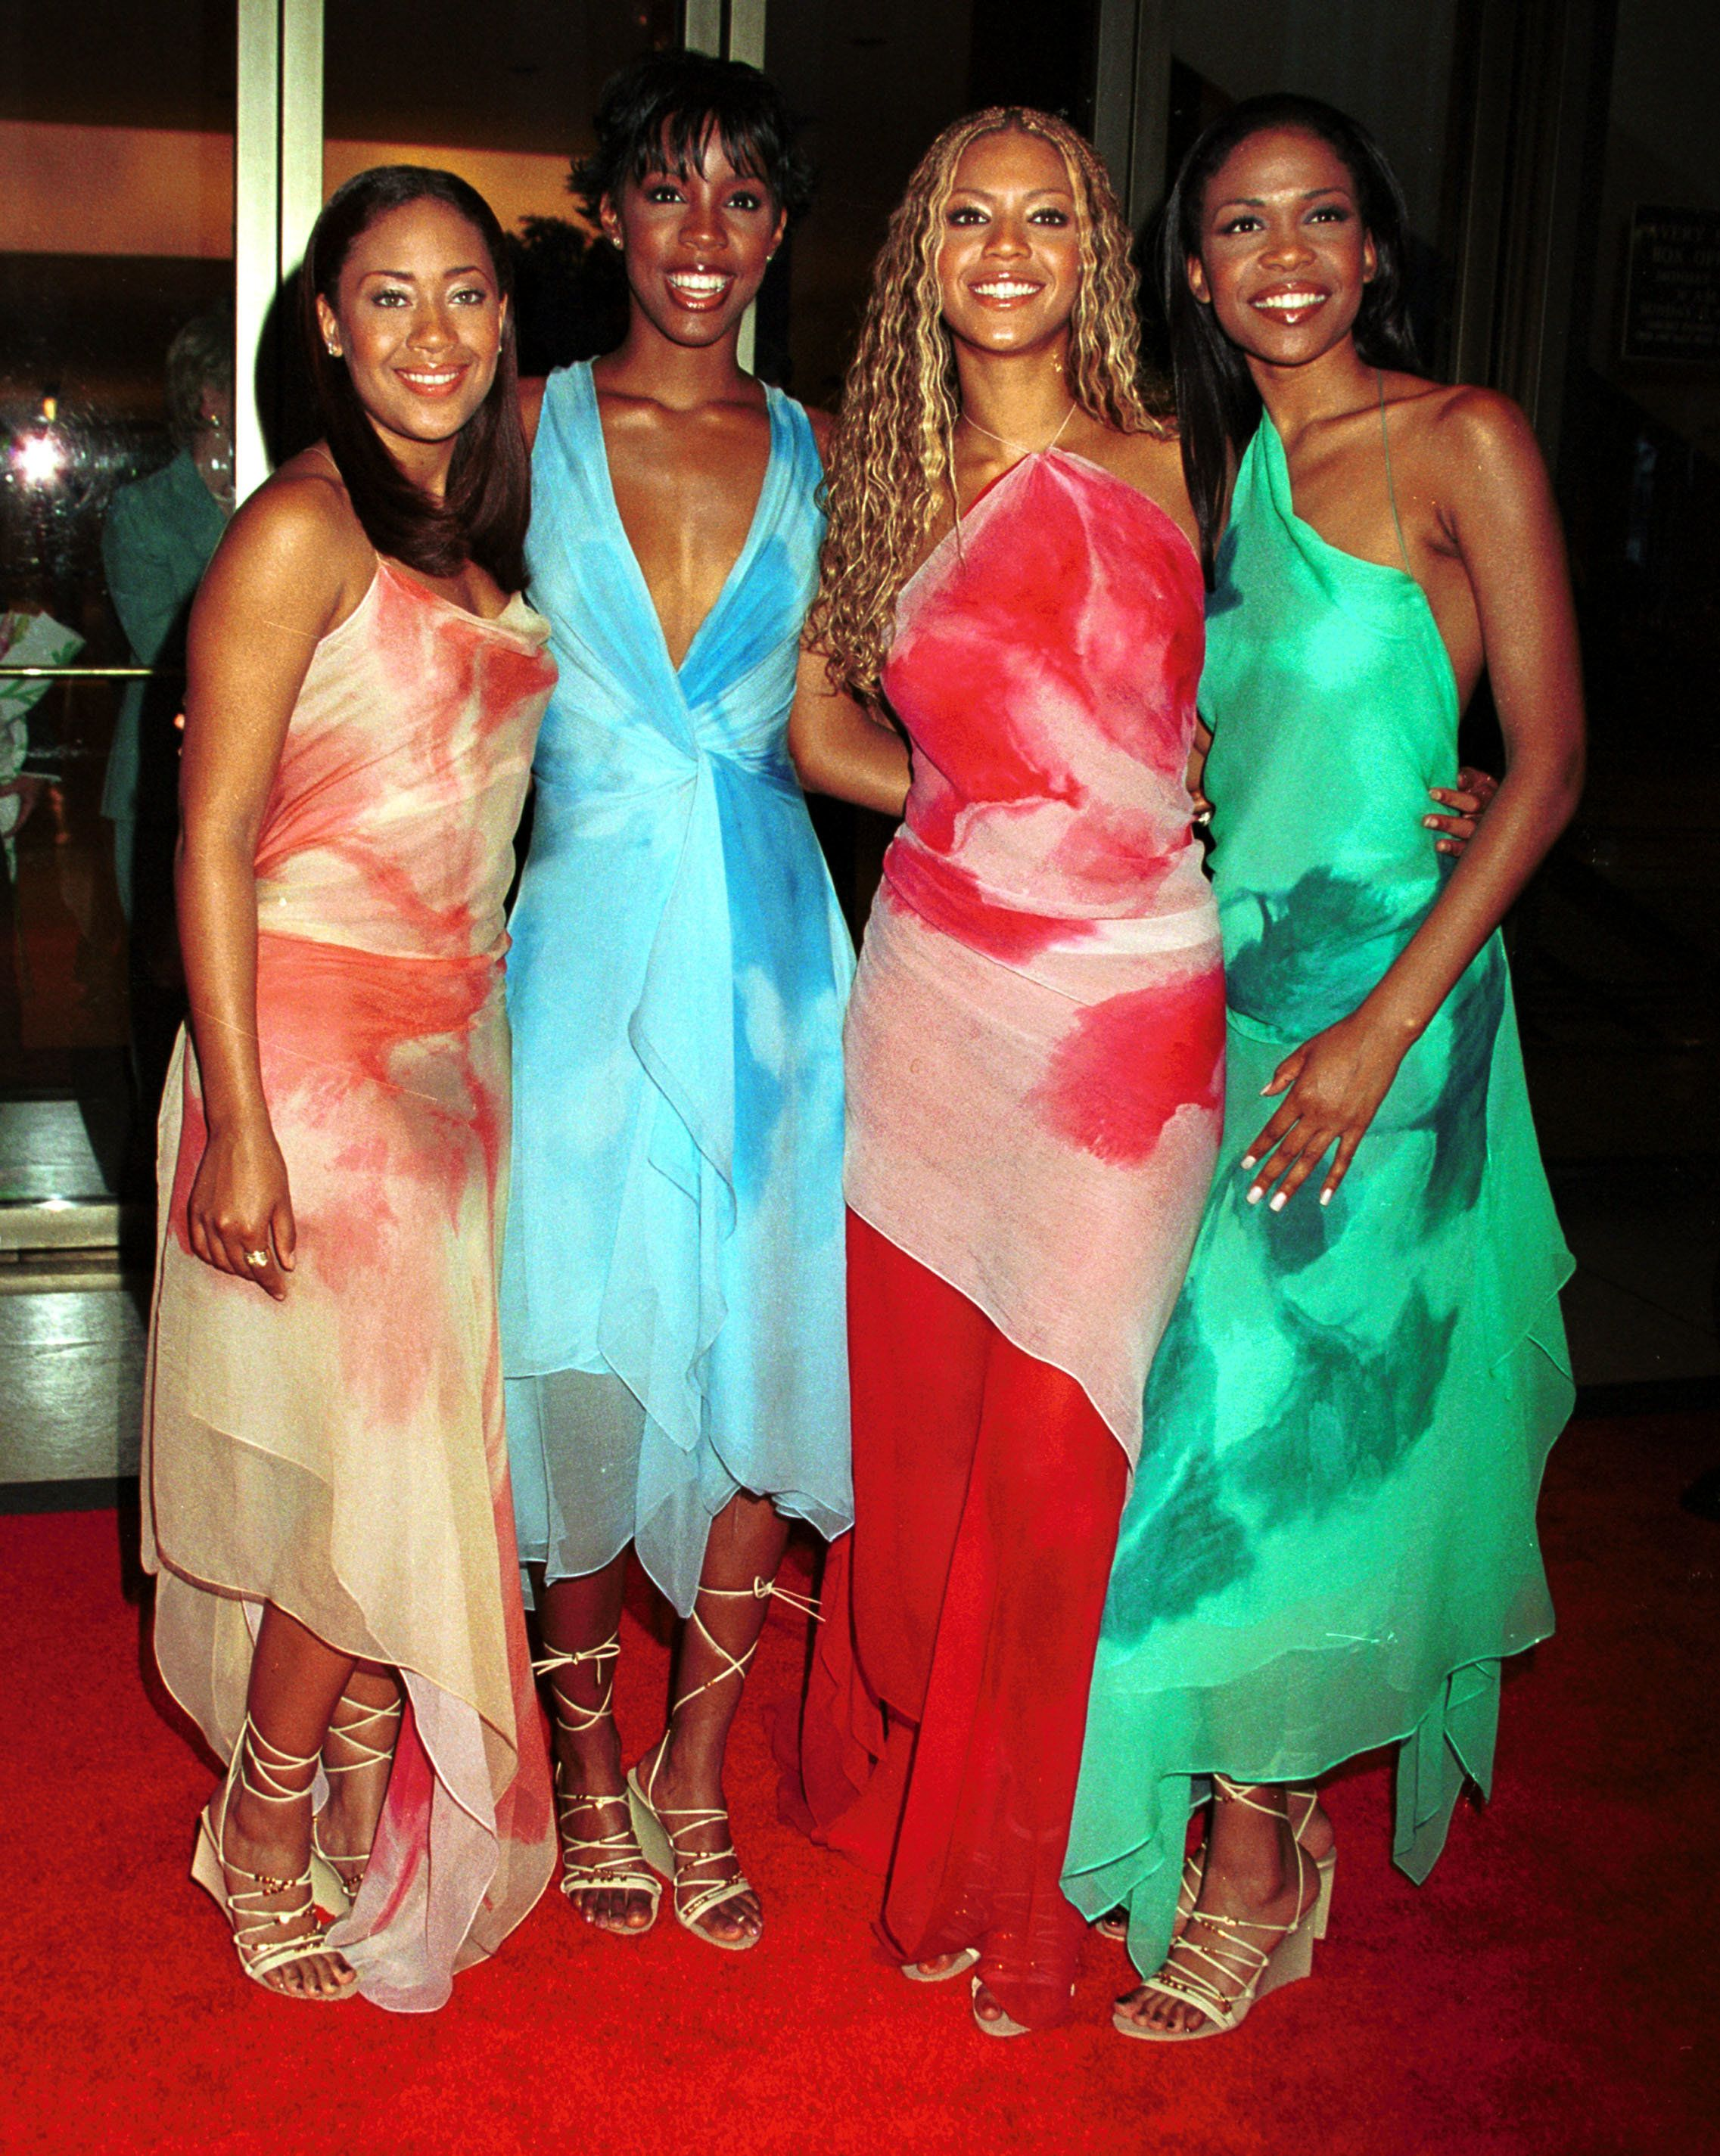 Franklin, Rowland, Knowles and Williams at the American Fashion Awards 2000 in New York City.